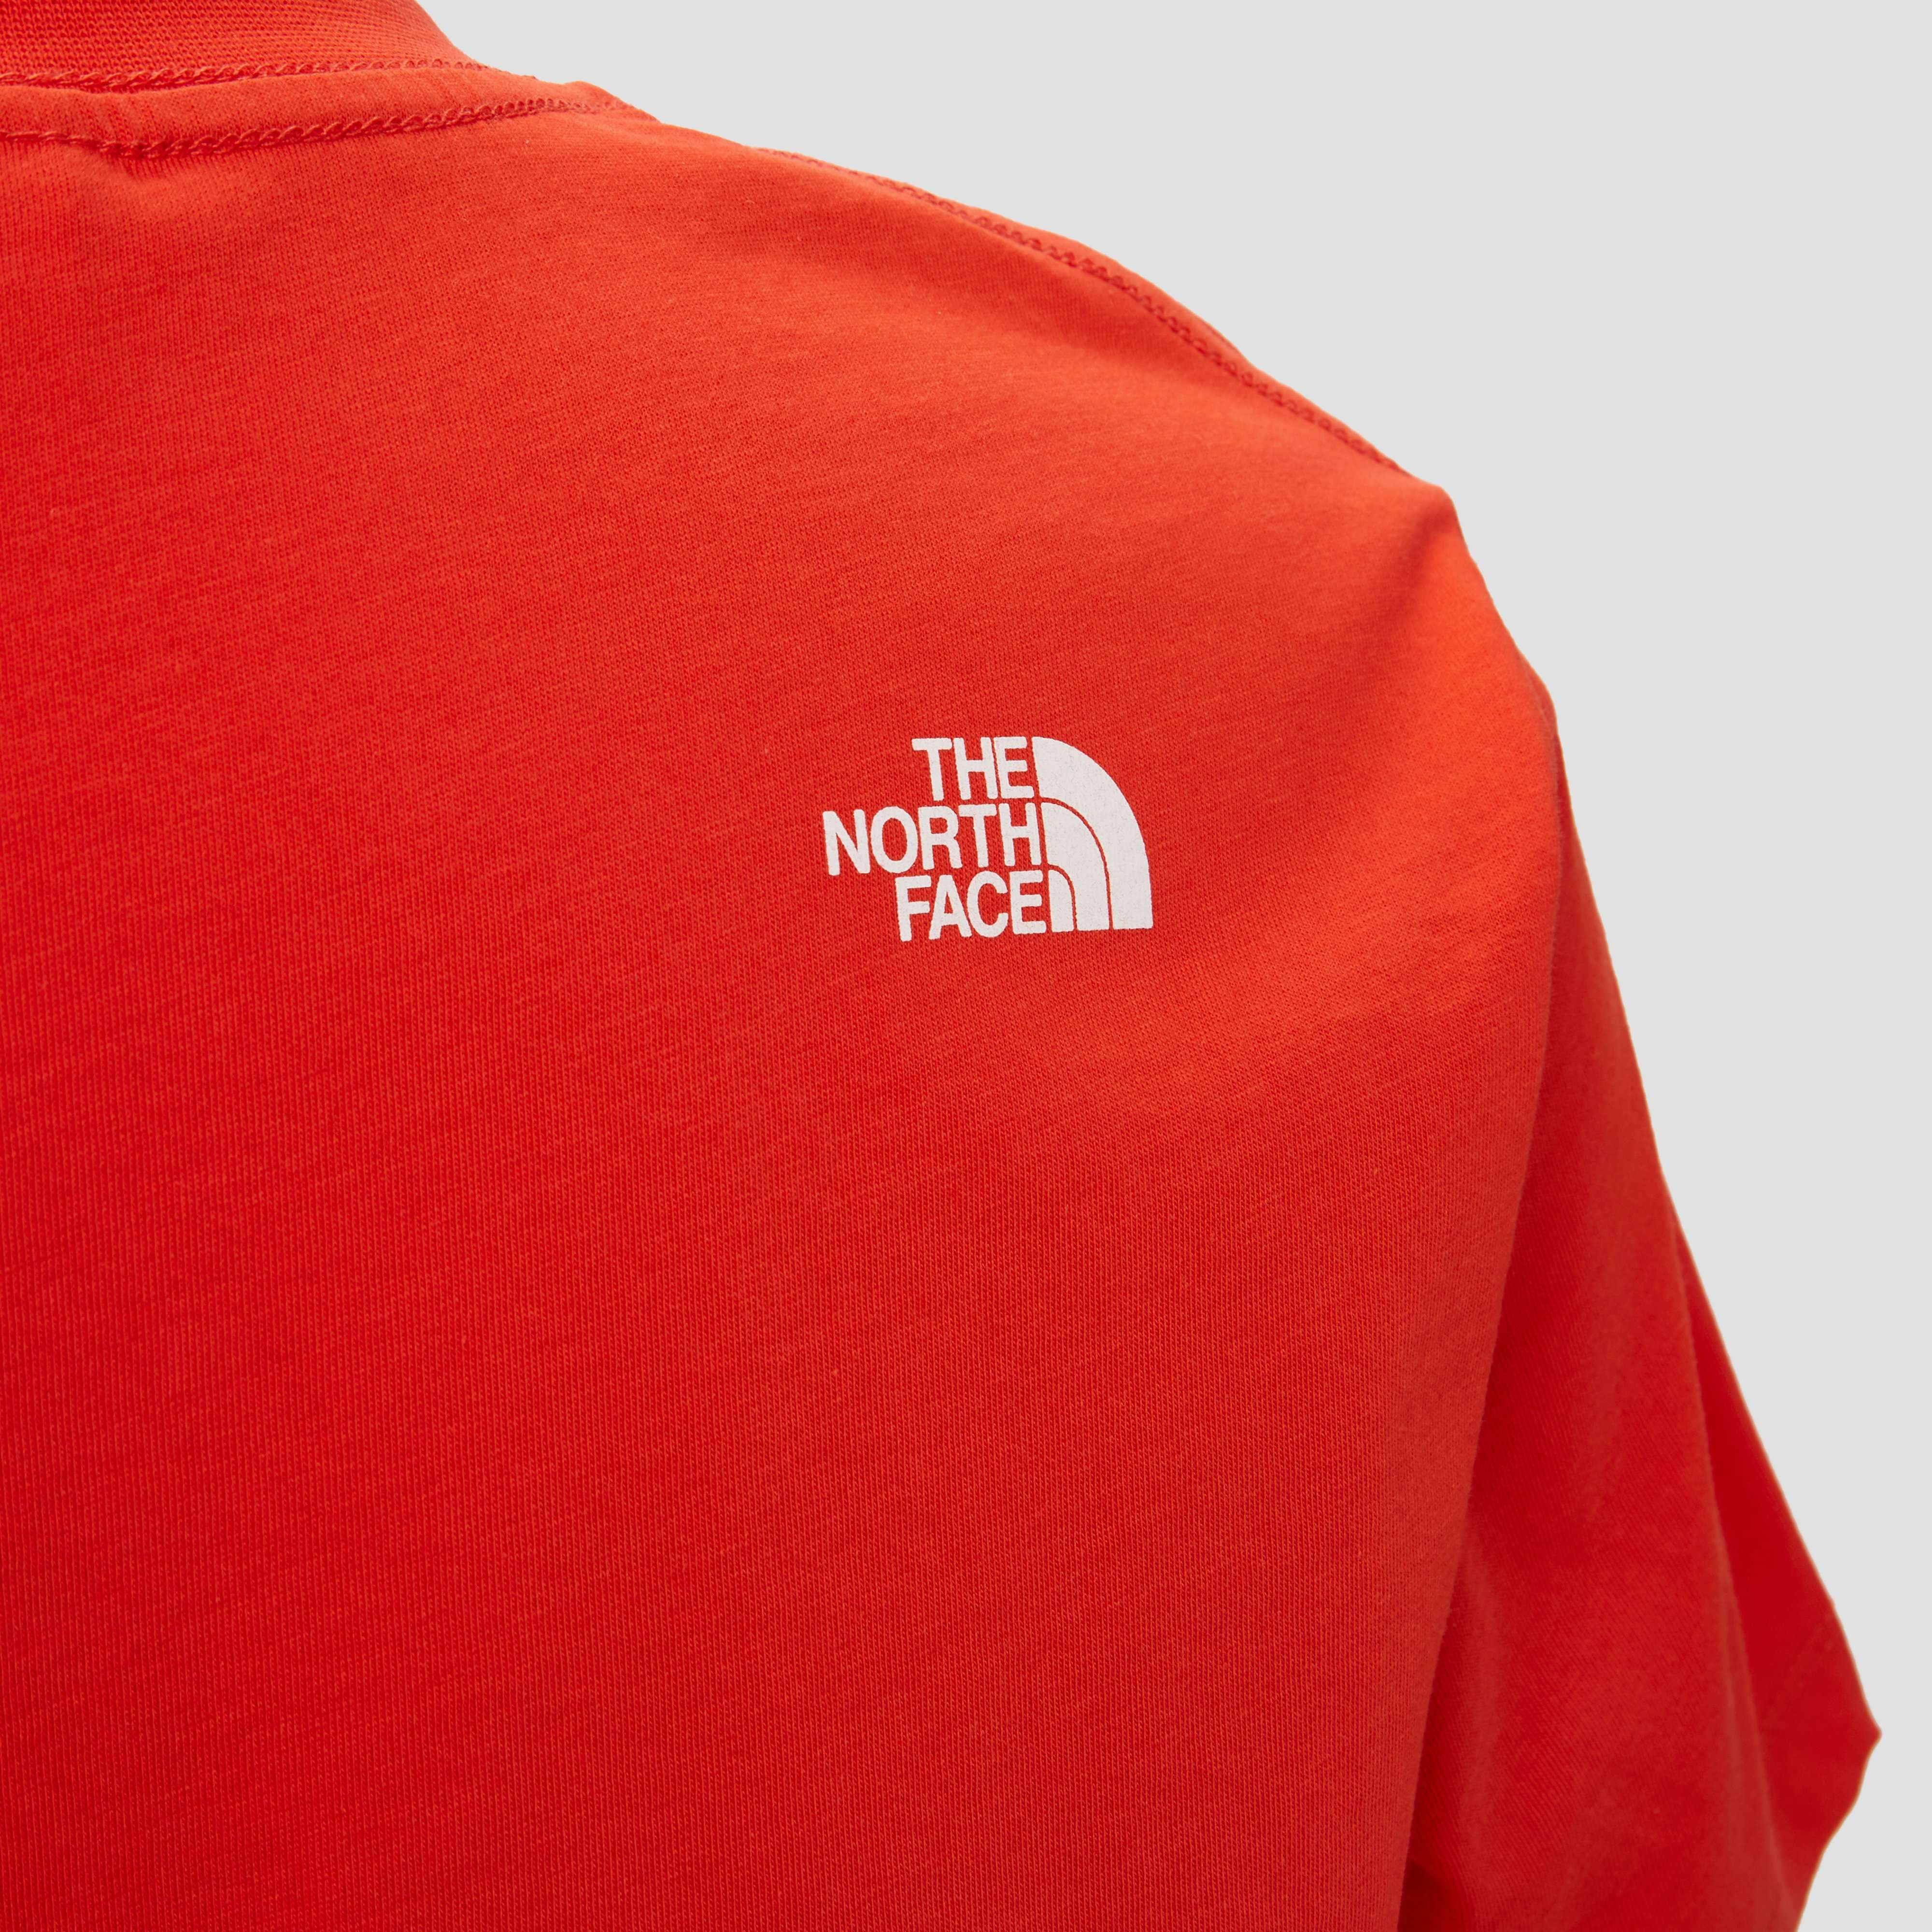 THE NORTH FACE EASY SHIRT ROOD/WIT KINDEREN